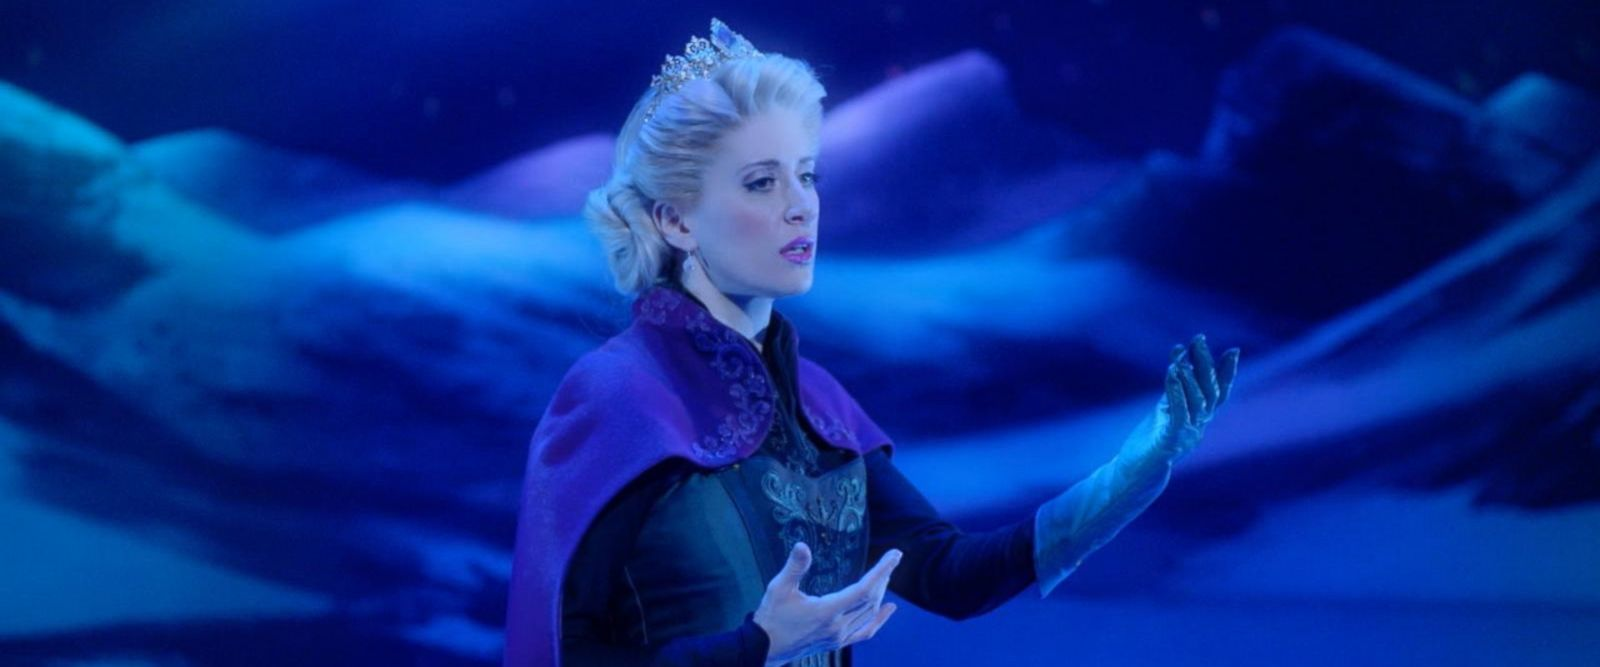 VIDEO: Disney's 'Frozen' makes its debut on Broadway